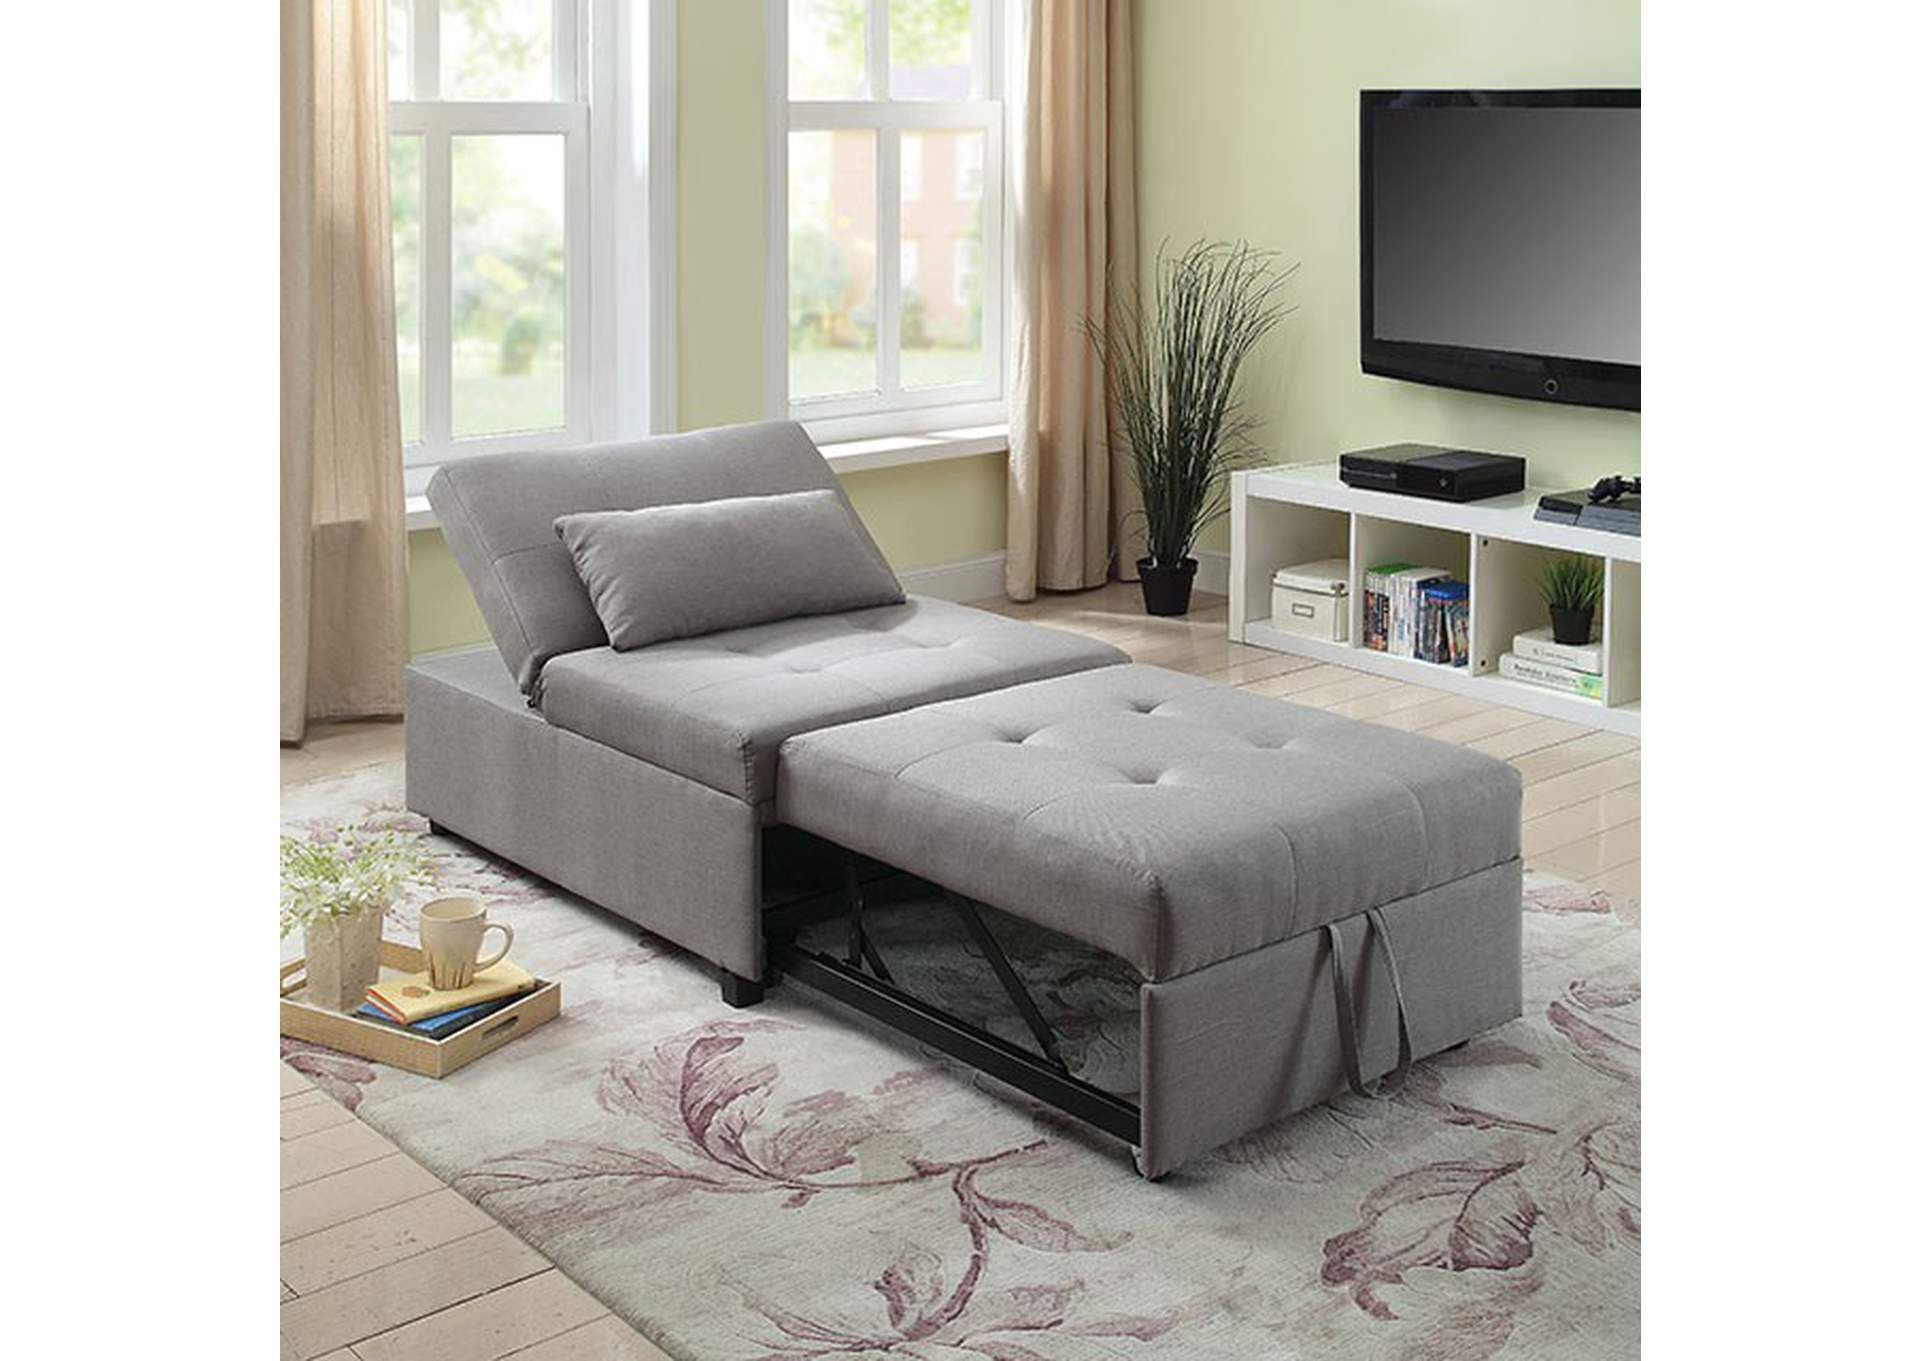 Oona Gray Futon Sofa,Furniture of America